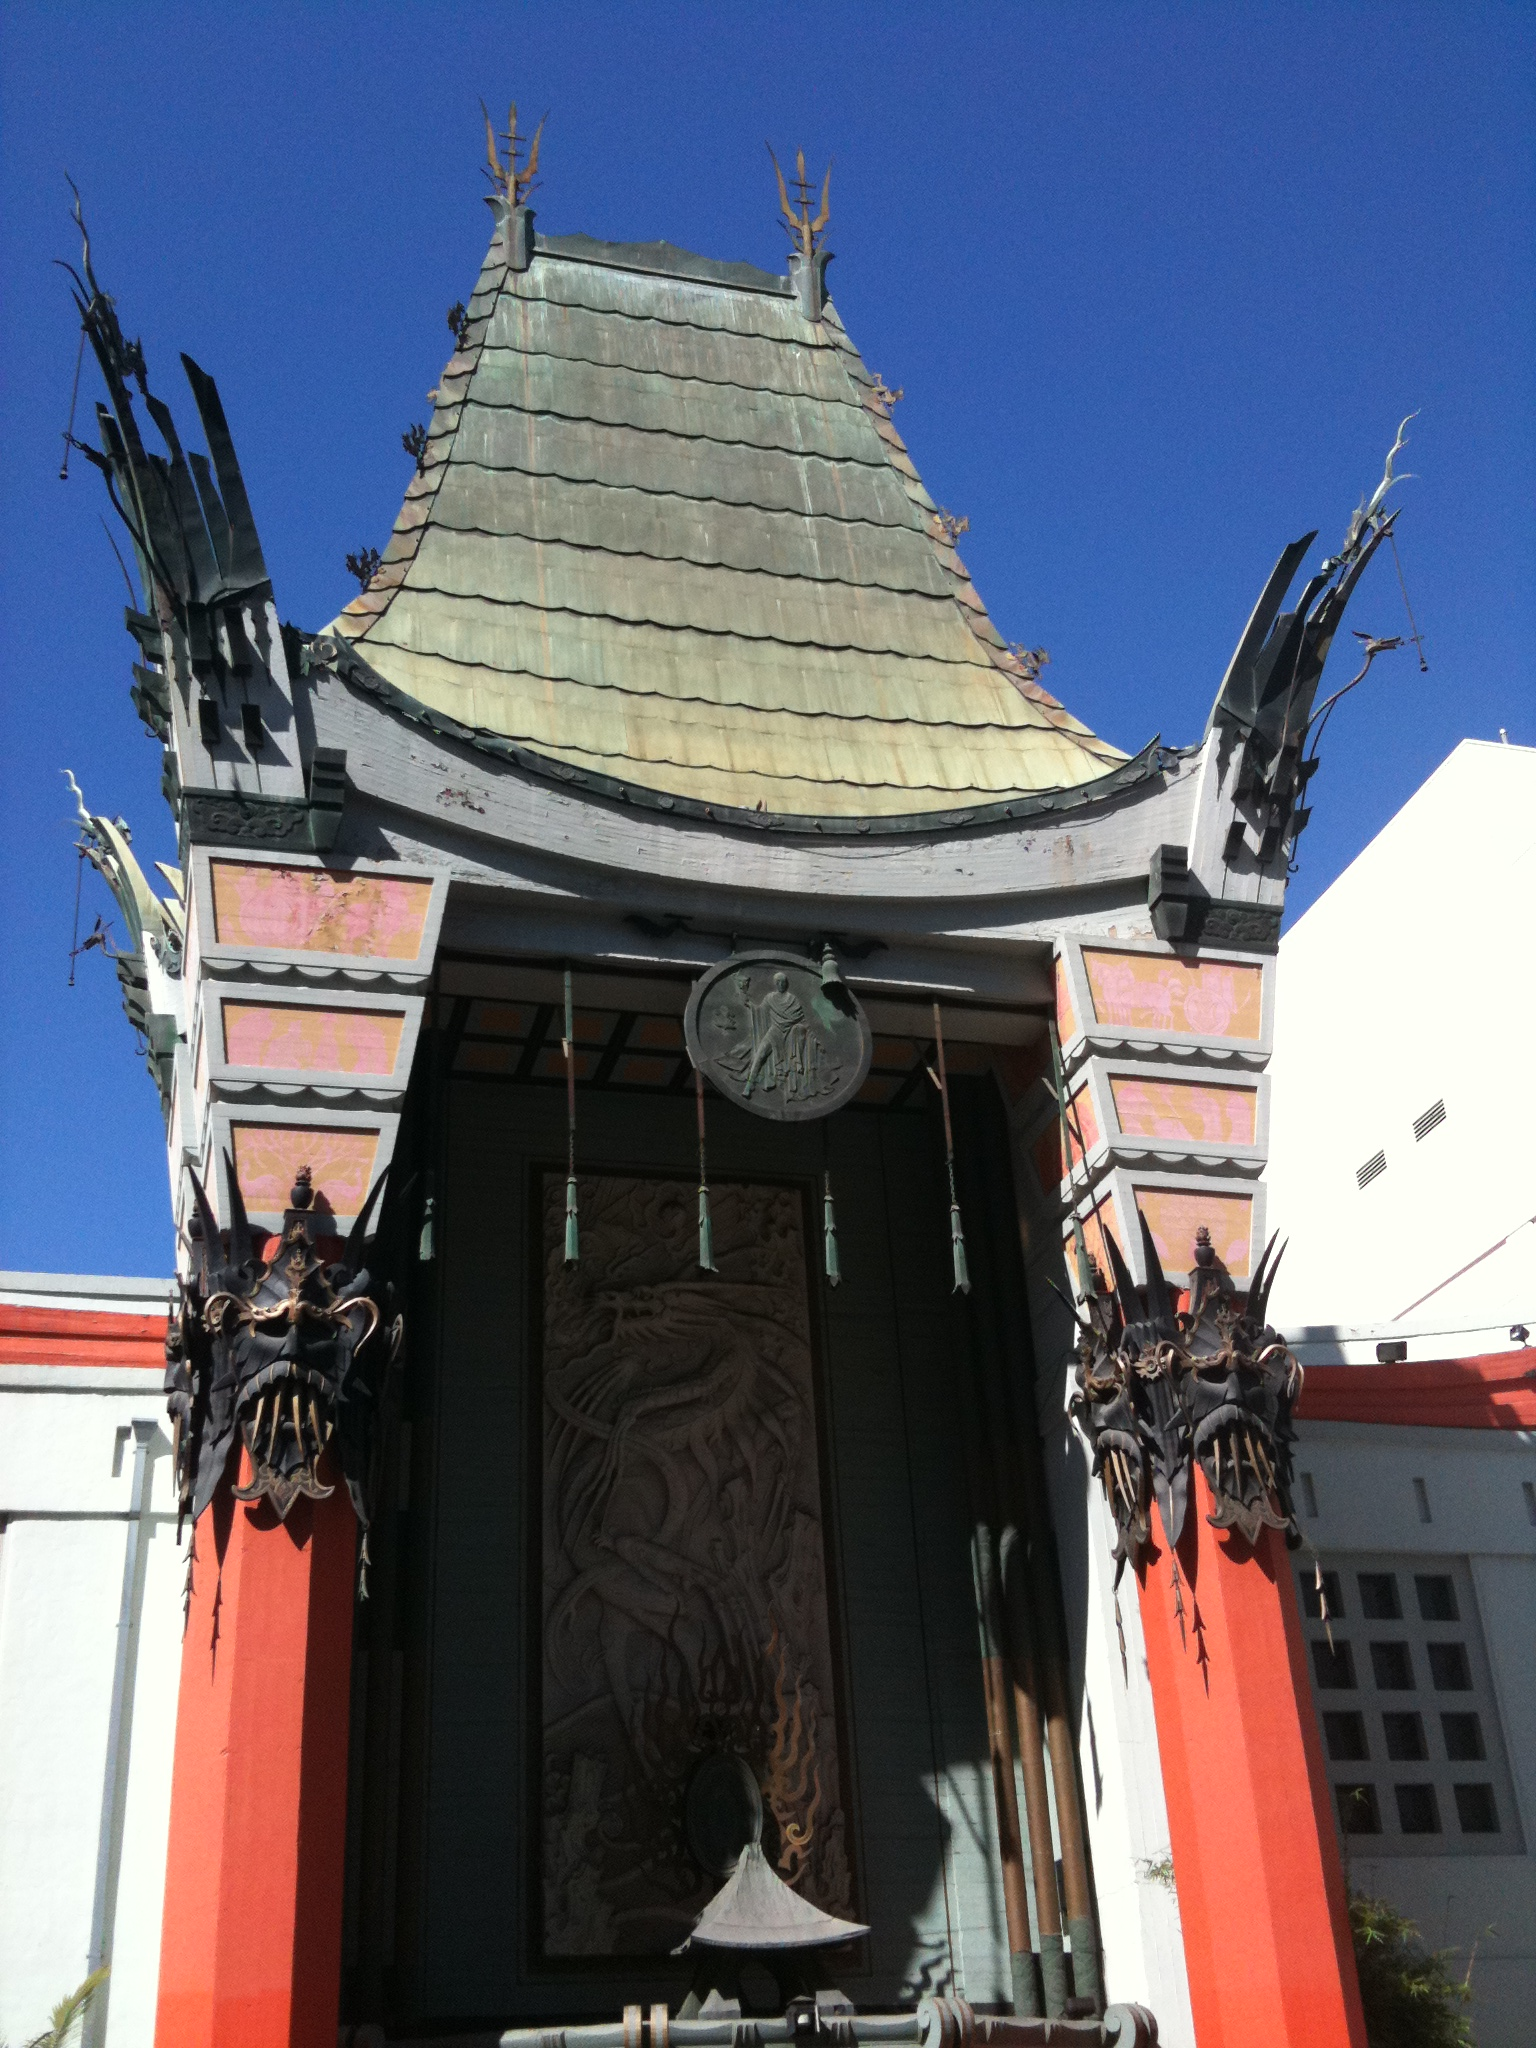 The Chinese Theater near Hollywood and Highland Station